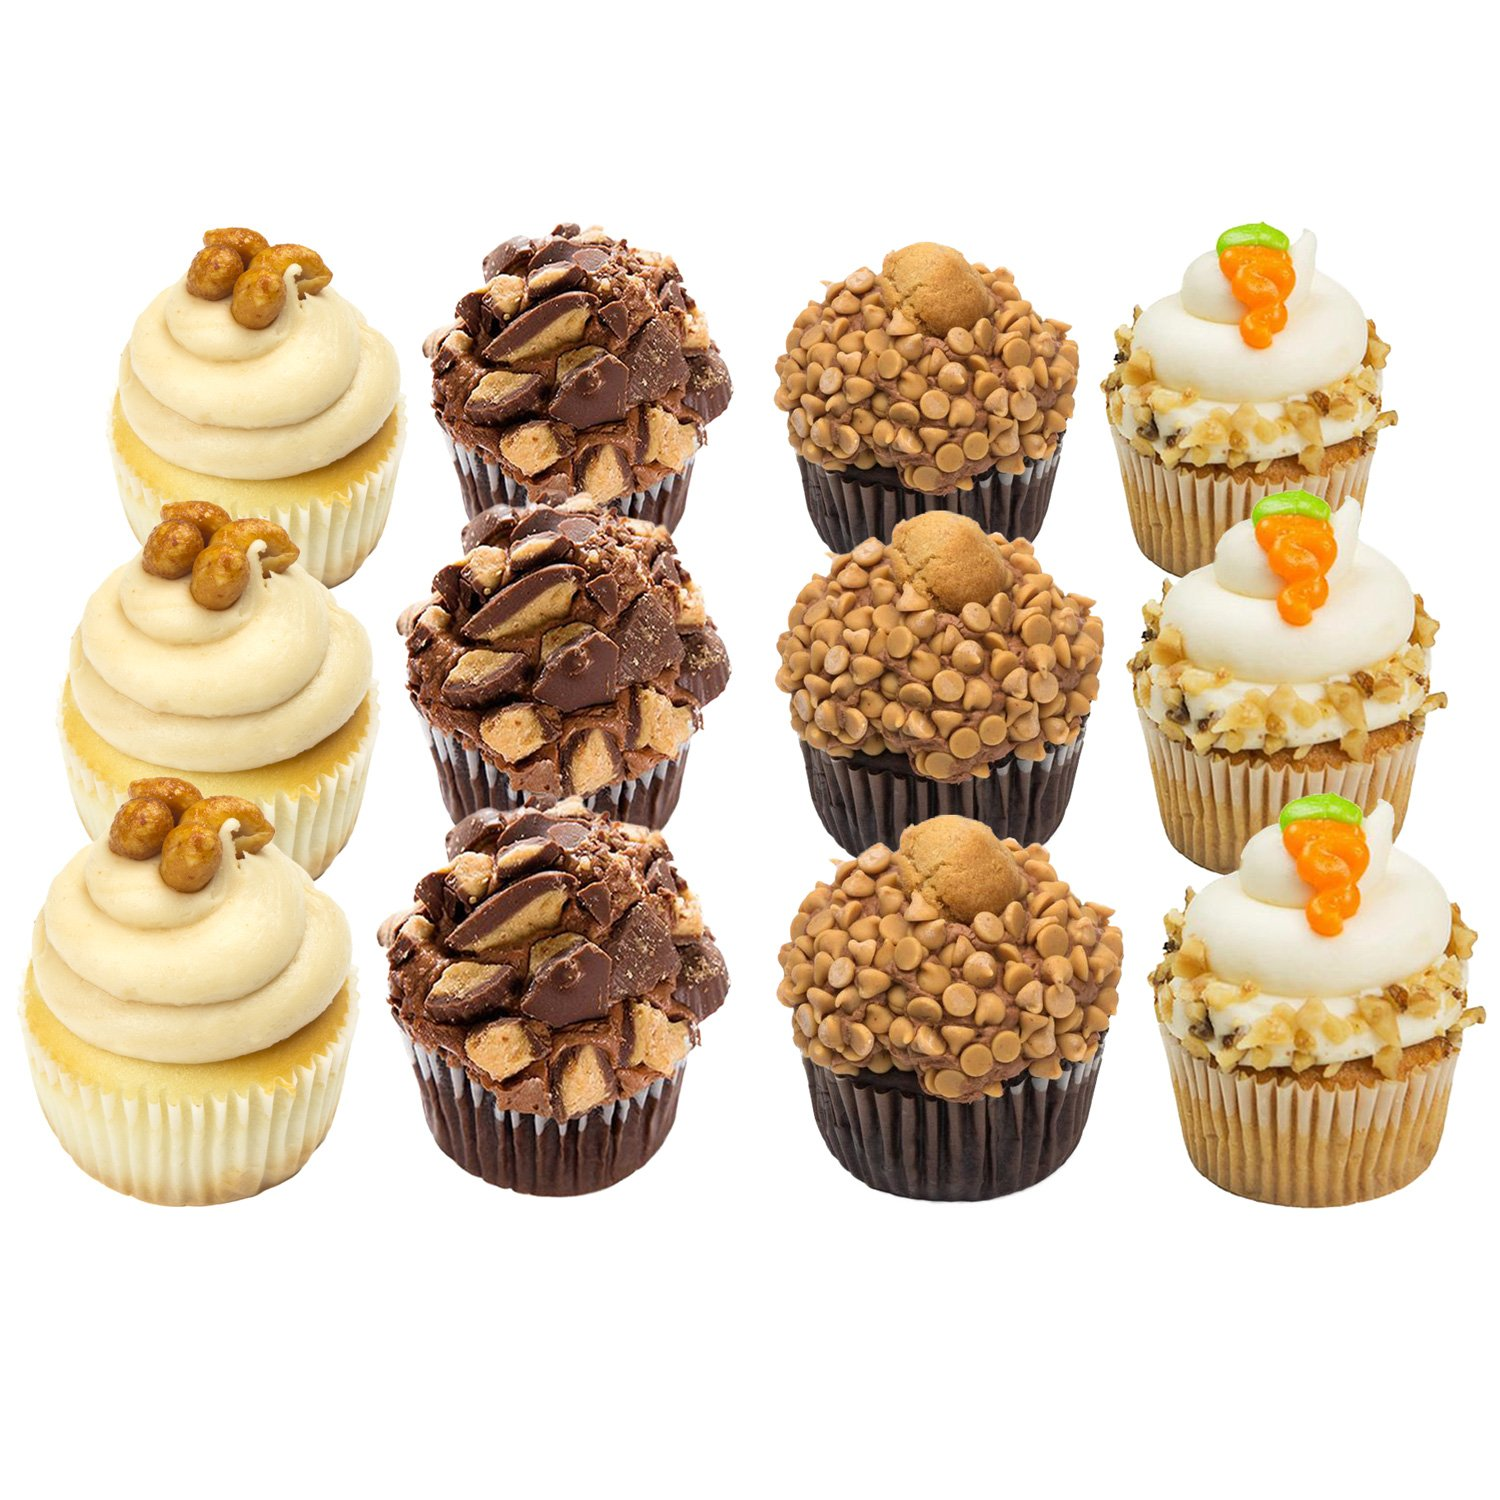 Cupcakes - Nut Lovers - Peanut Butter - Dessert - 12 Pack Assortment - Baked Fresh Day of Order